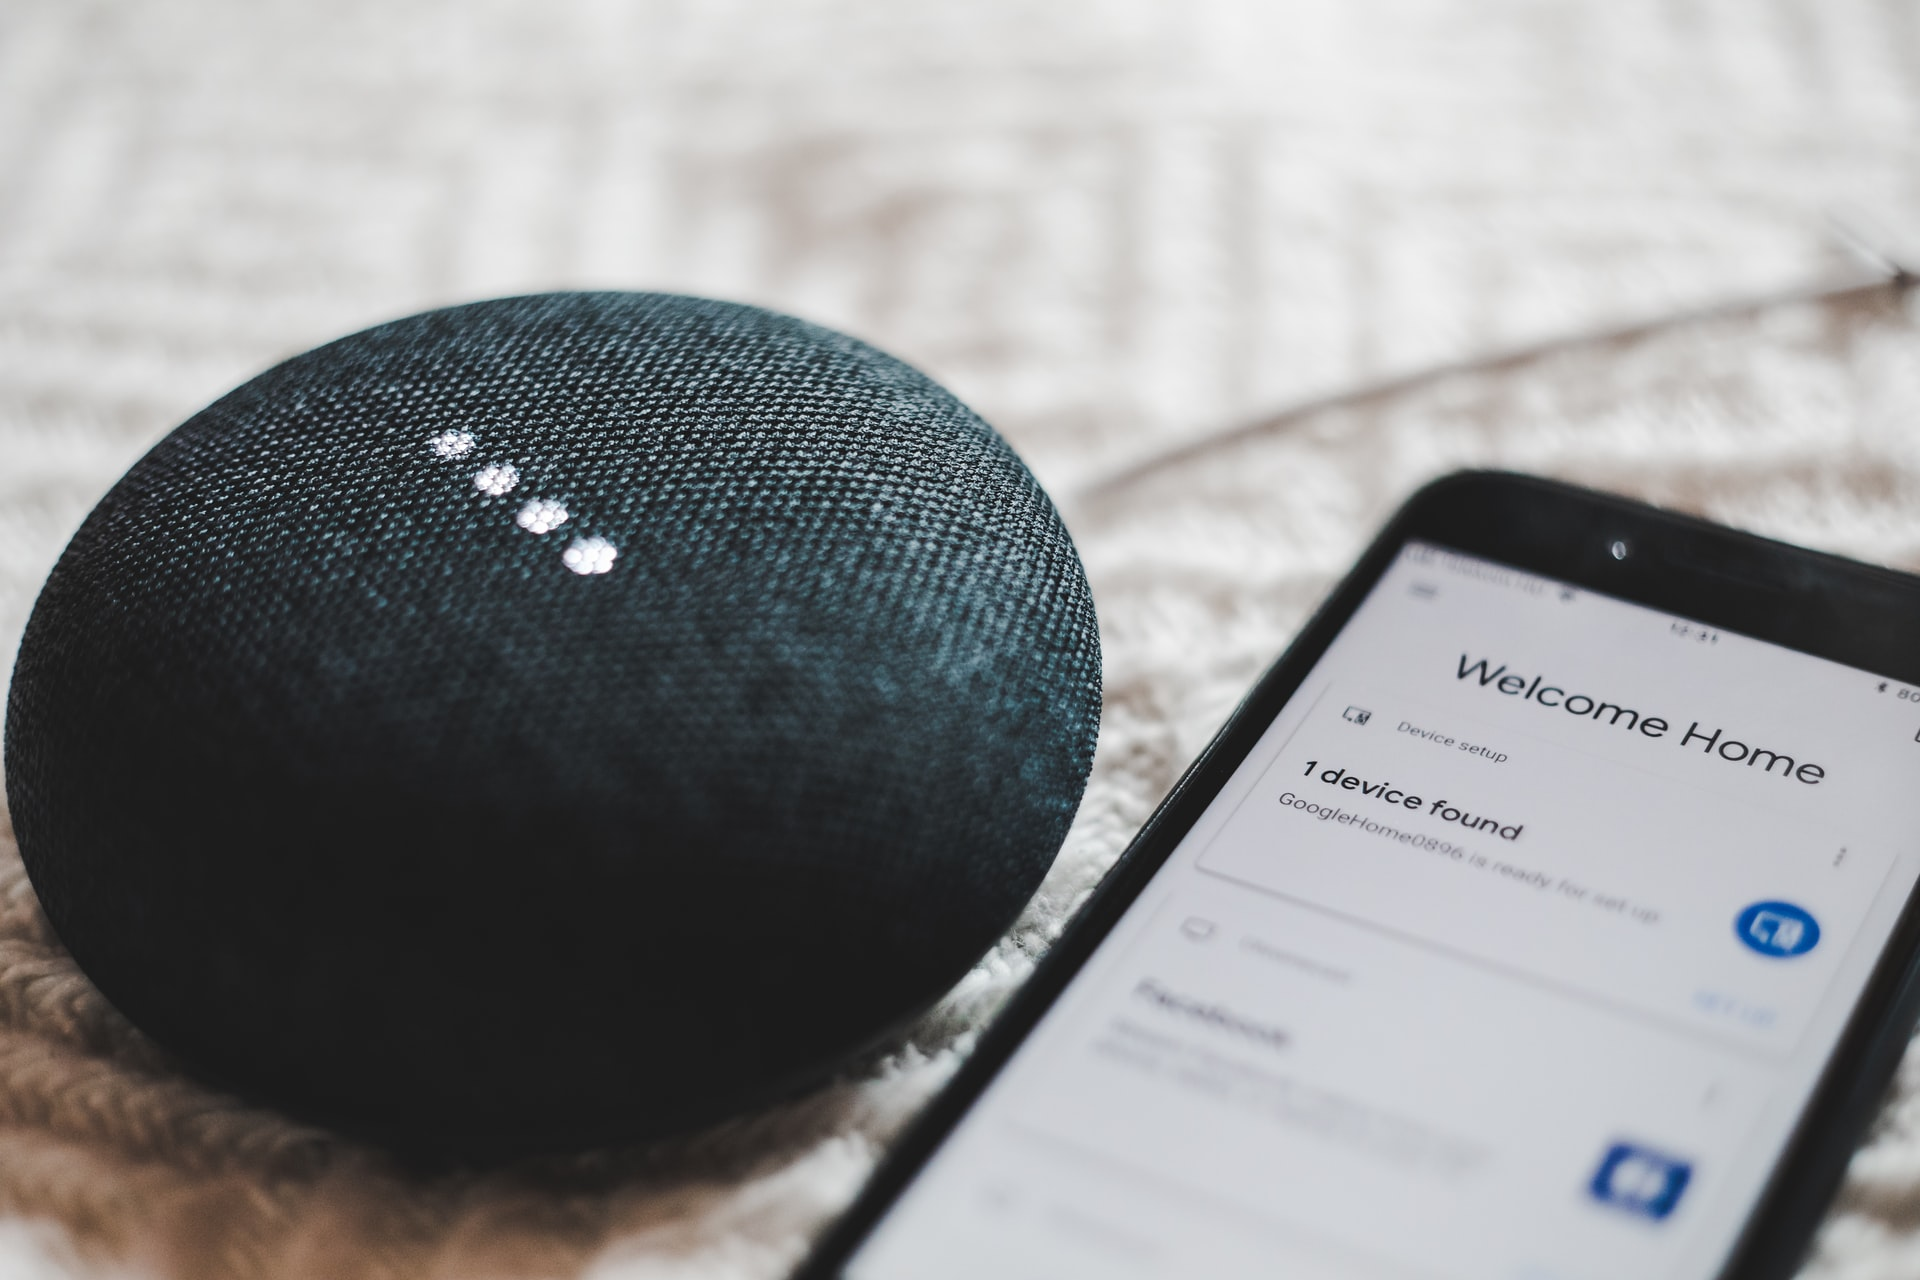 07_Adding voice-activated smart devices makes your smart home technology for vacation rentals even better. A Google Home smart assistant